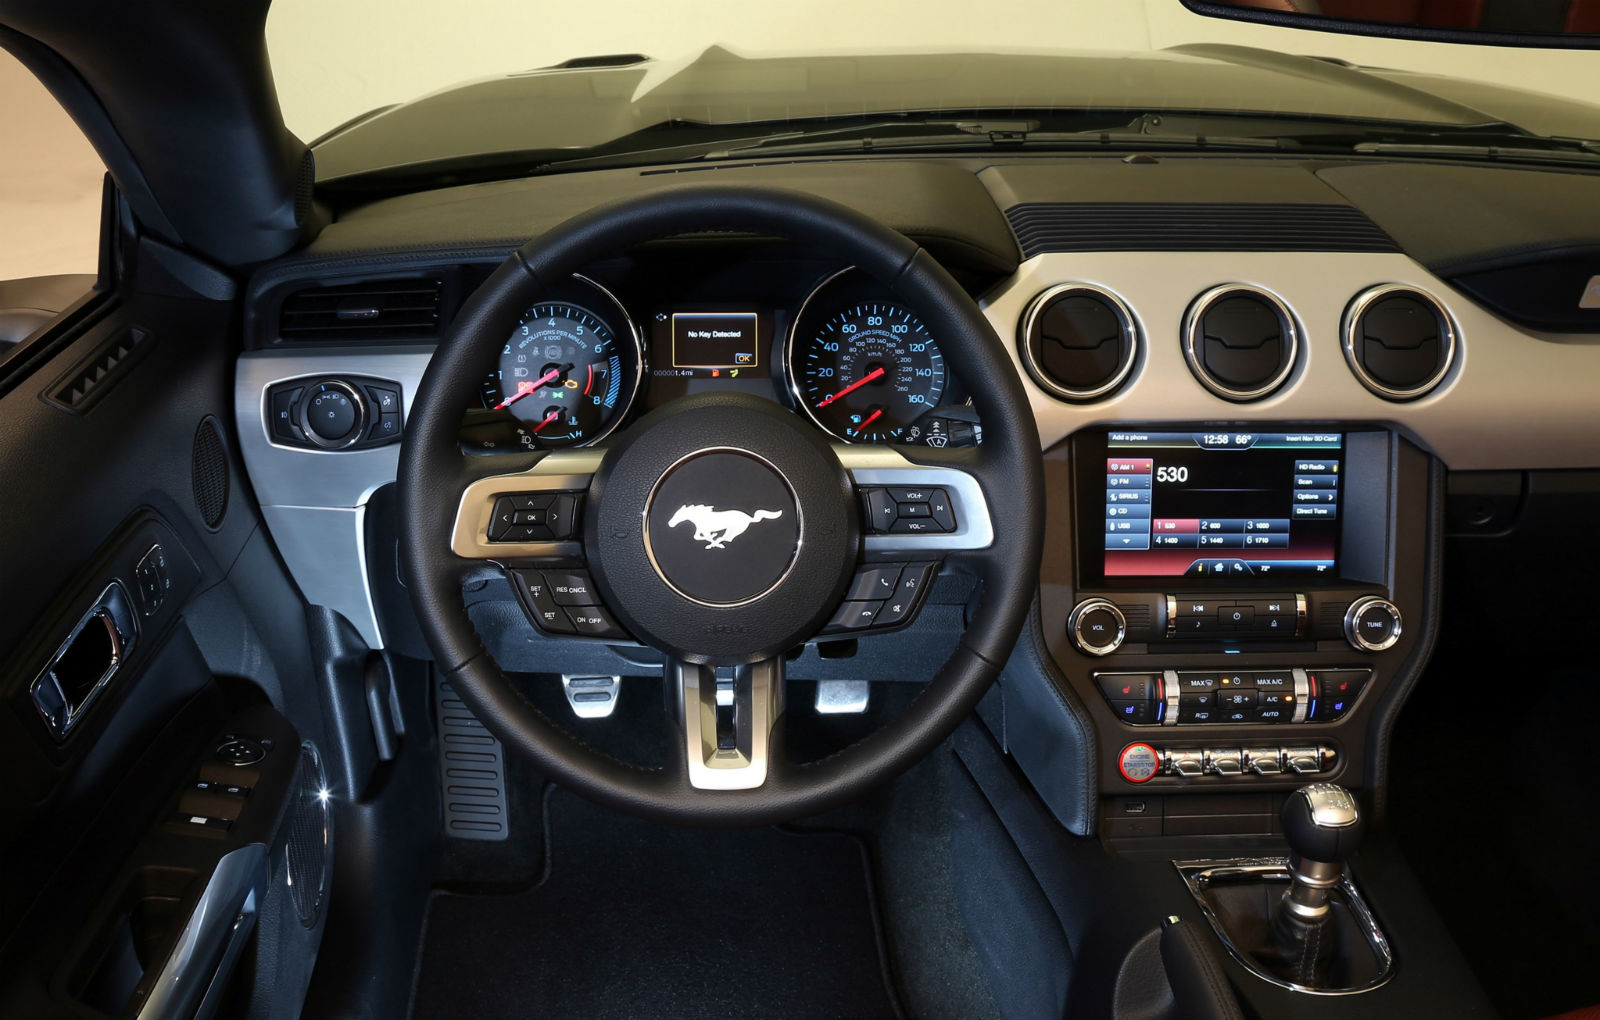 2015 ford mustang black wallpaper 2015 ford mustang gt interior pict - Mustang 2014 Black Wallpaper